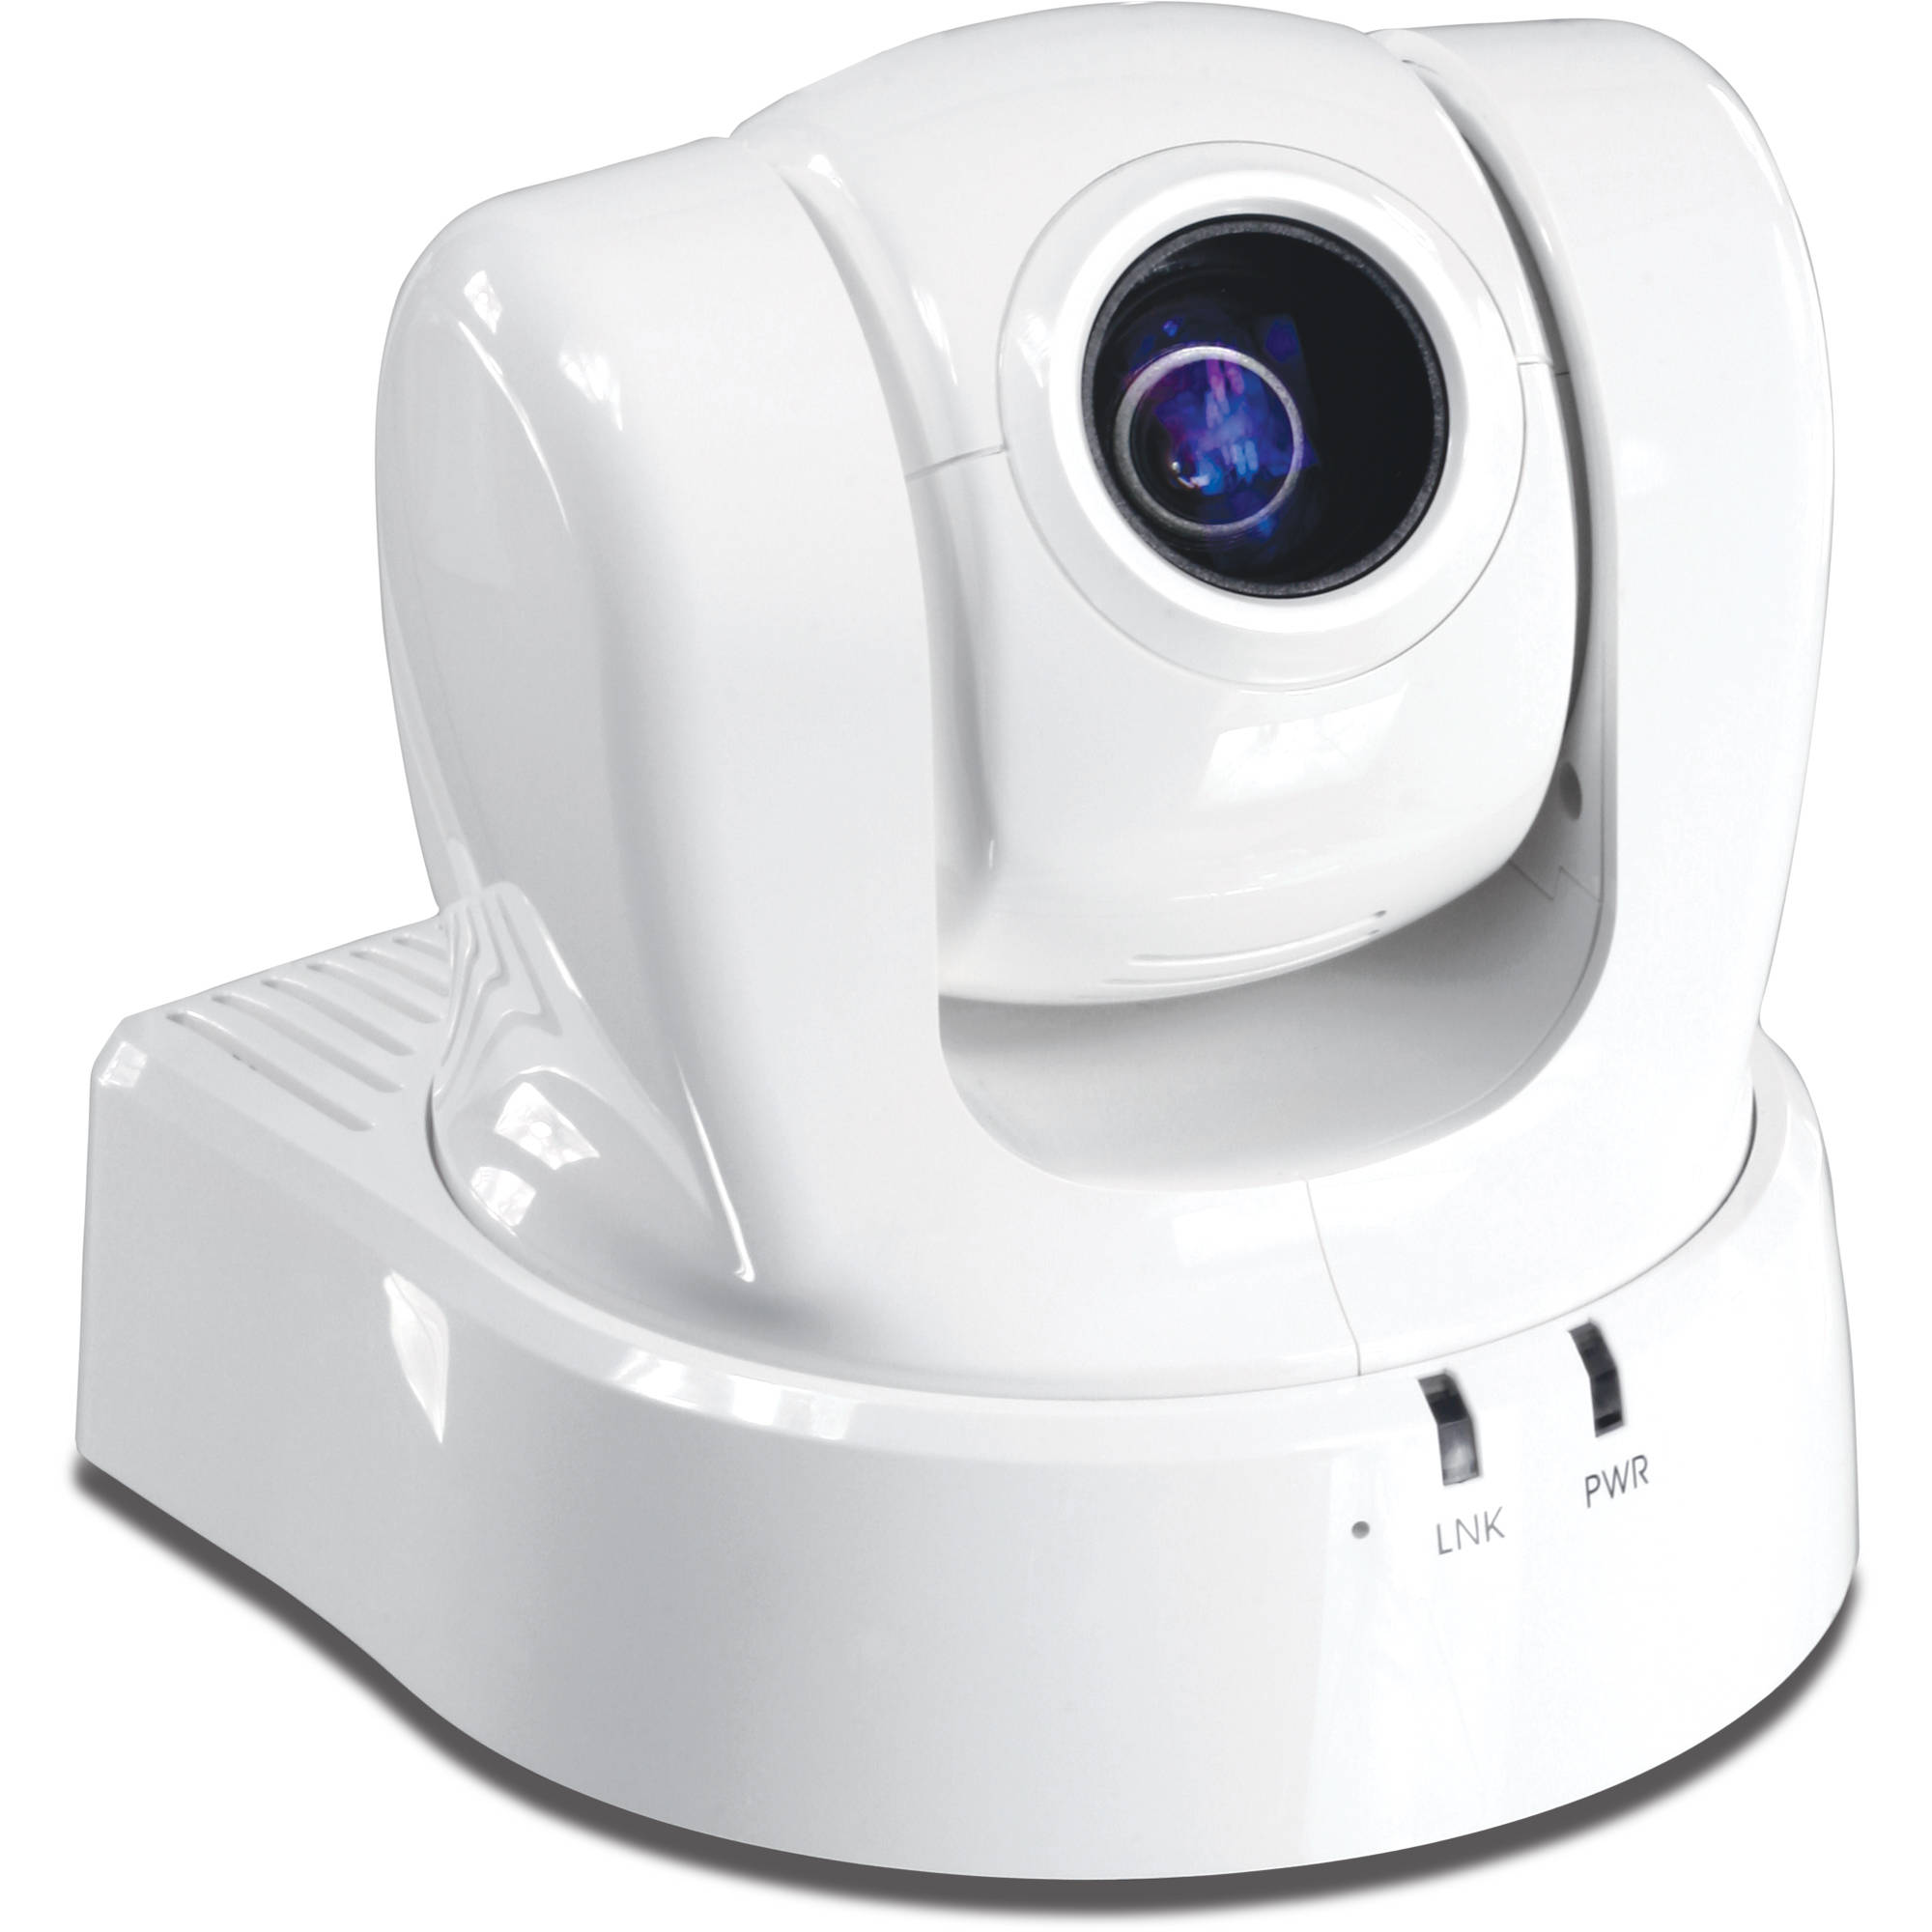 Trendnet proview poe ptz internet camera tv ip612p b h photo for Camera it web tv